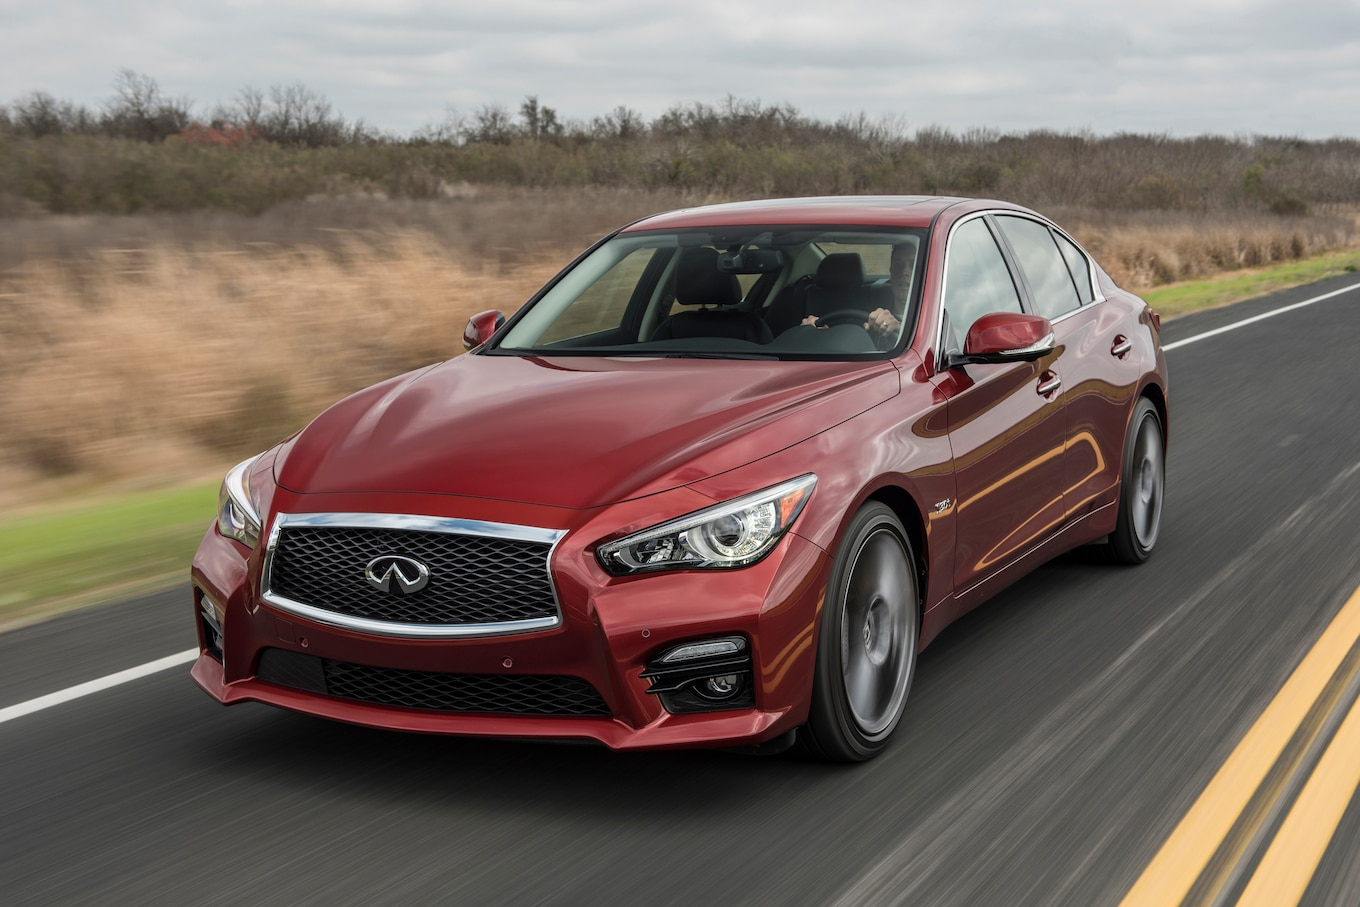 hight resolution of 2016 infiniti q50 reviews research q50 prices specs motortrend infiniti q50 fuse box recall